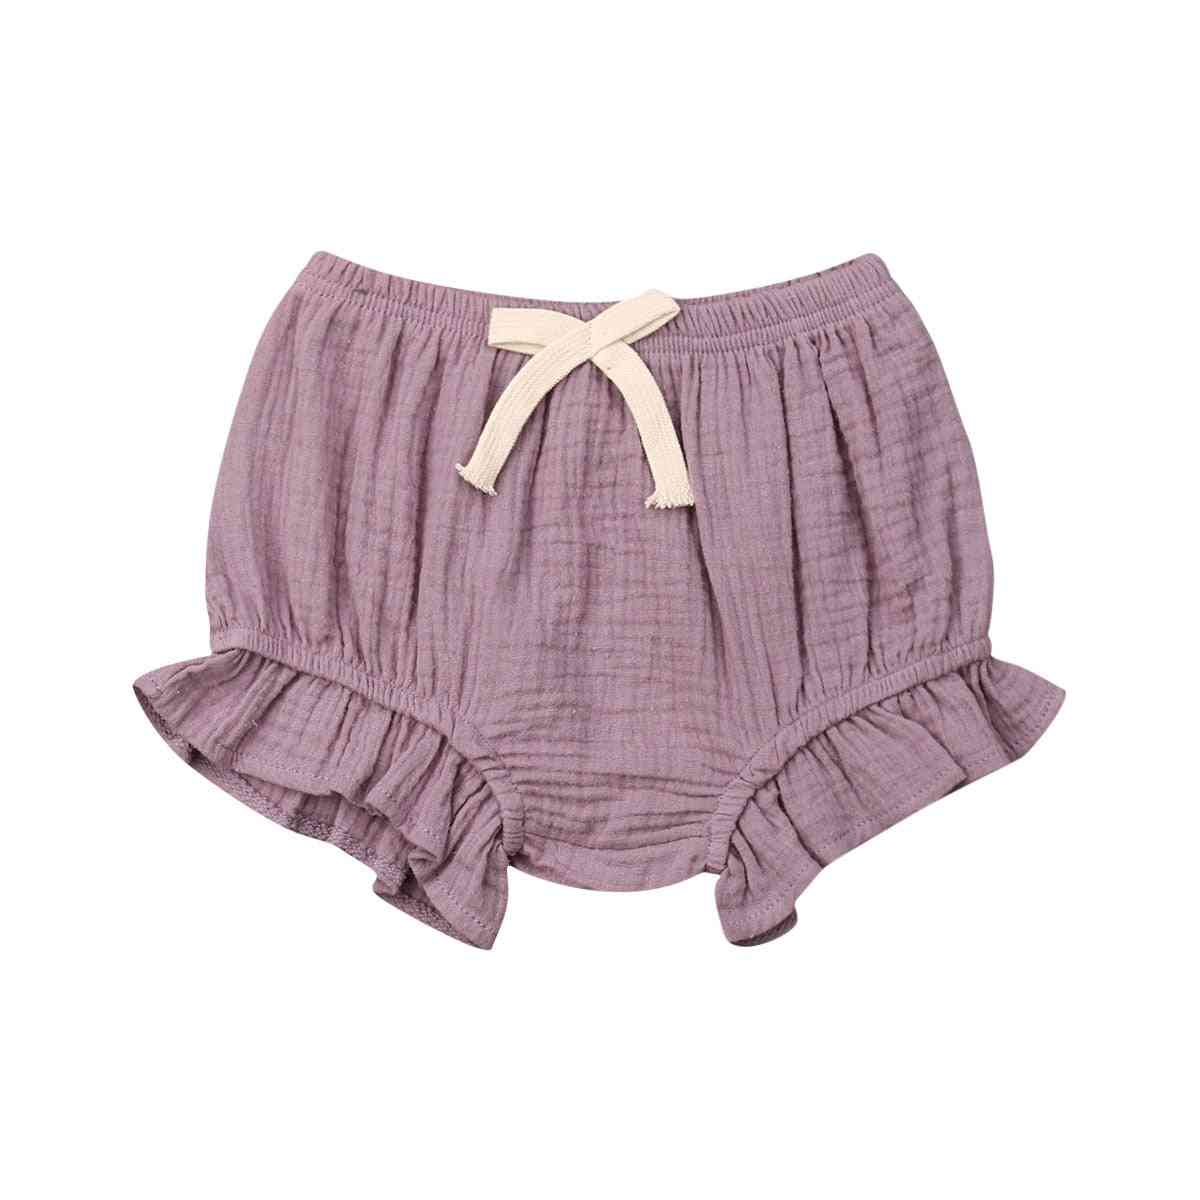 Toddler Infant Baby Boy / Girl Solid Pants- Shorts Bottoms Pp Bloomers Panties